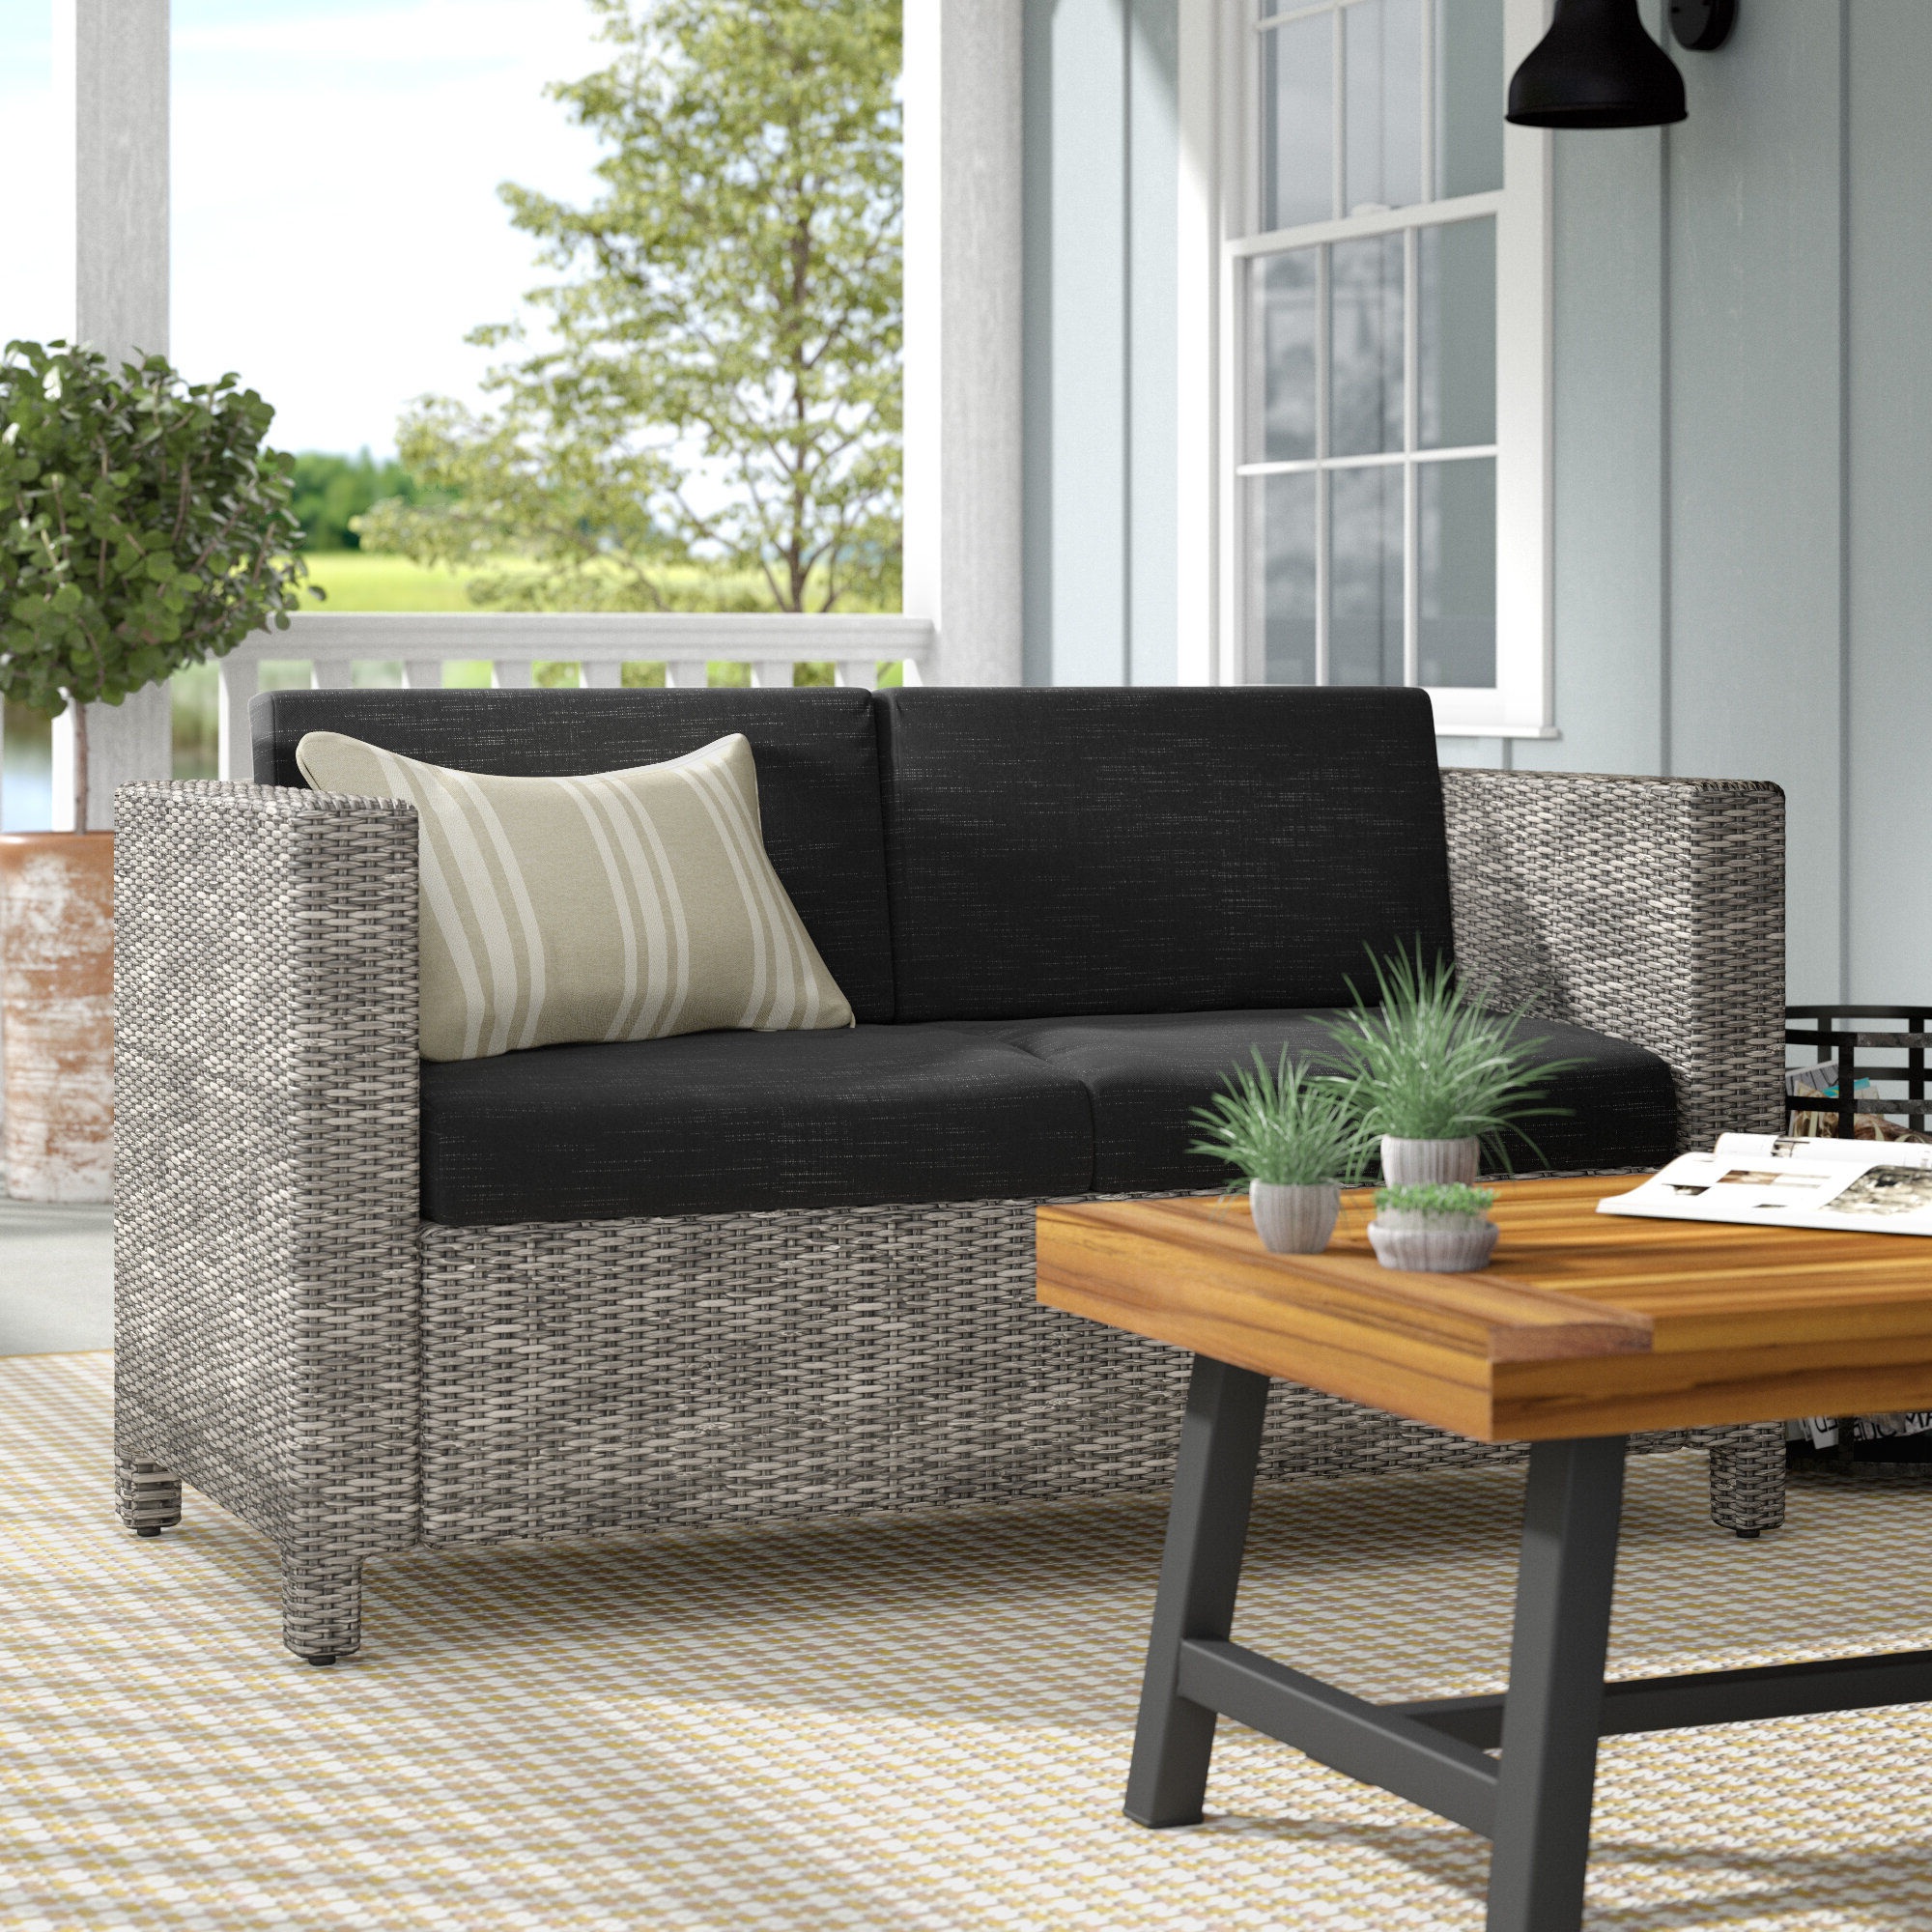 Most Up To Date Furst Outdoor Loveseat With Cushions Regarding Furst Outdoor Loveseats With Cushions (View 5 of 25)